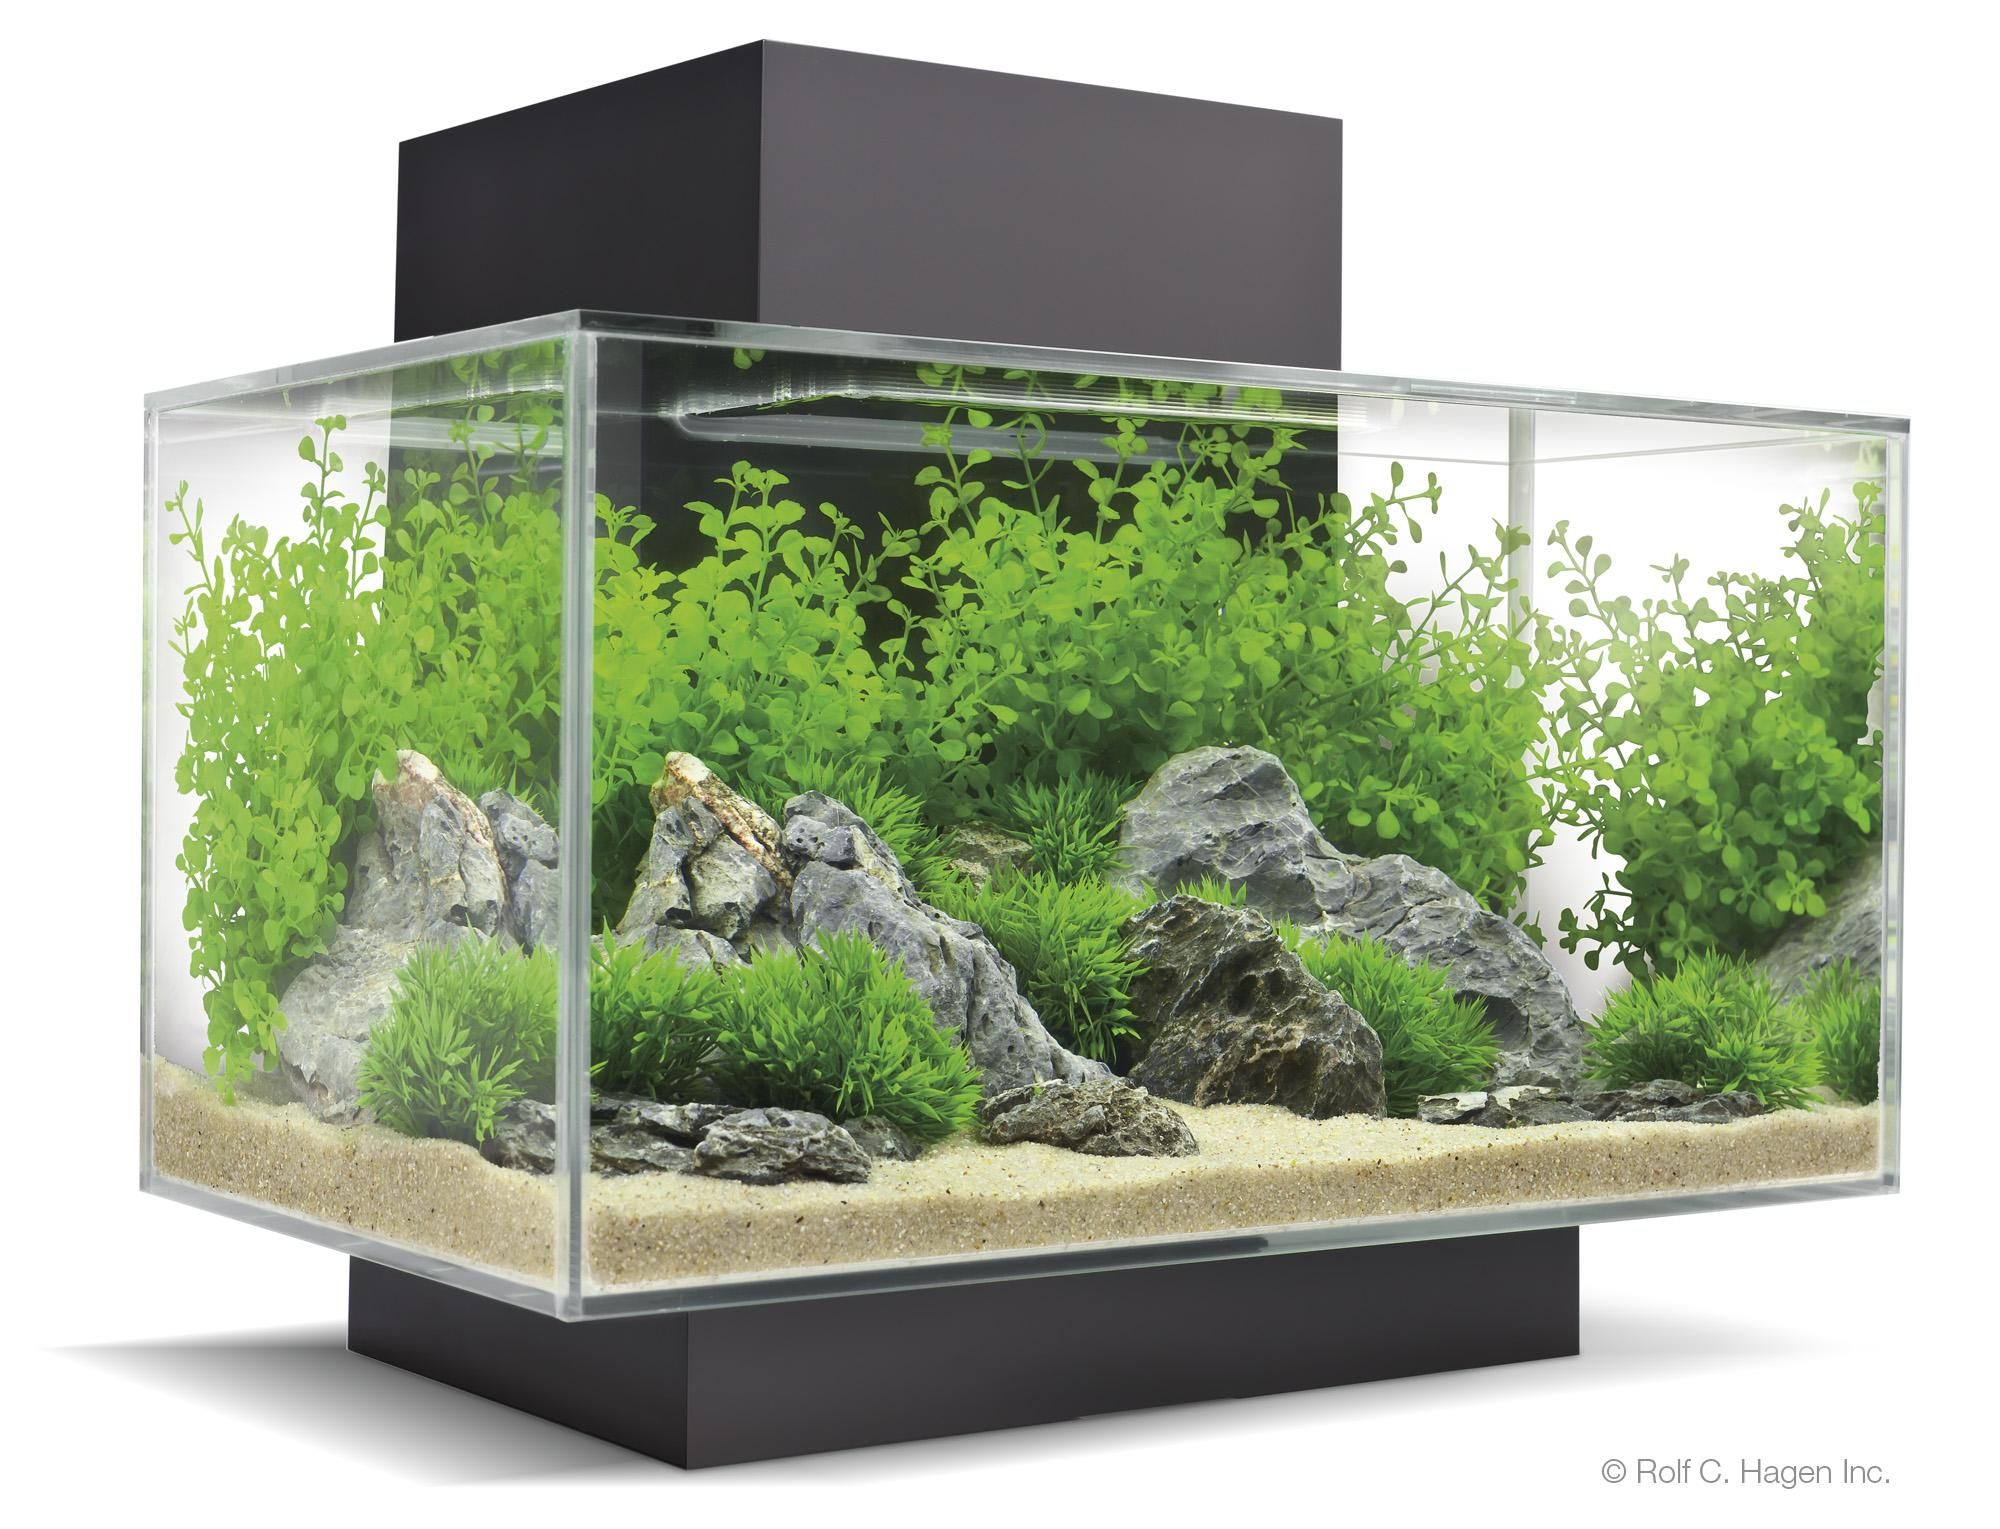 Fluval edge fish aquarium tank plant glass with led light for Fluval fish tank